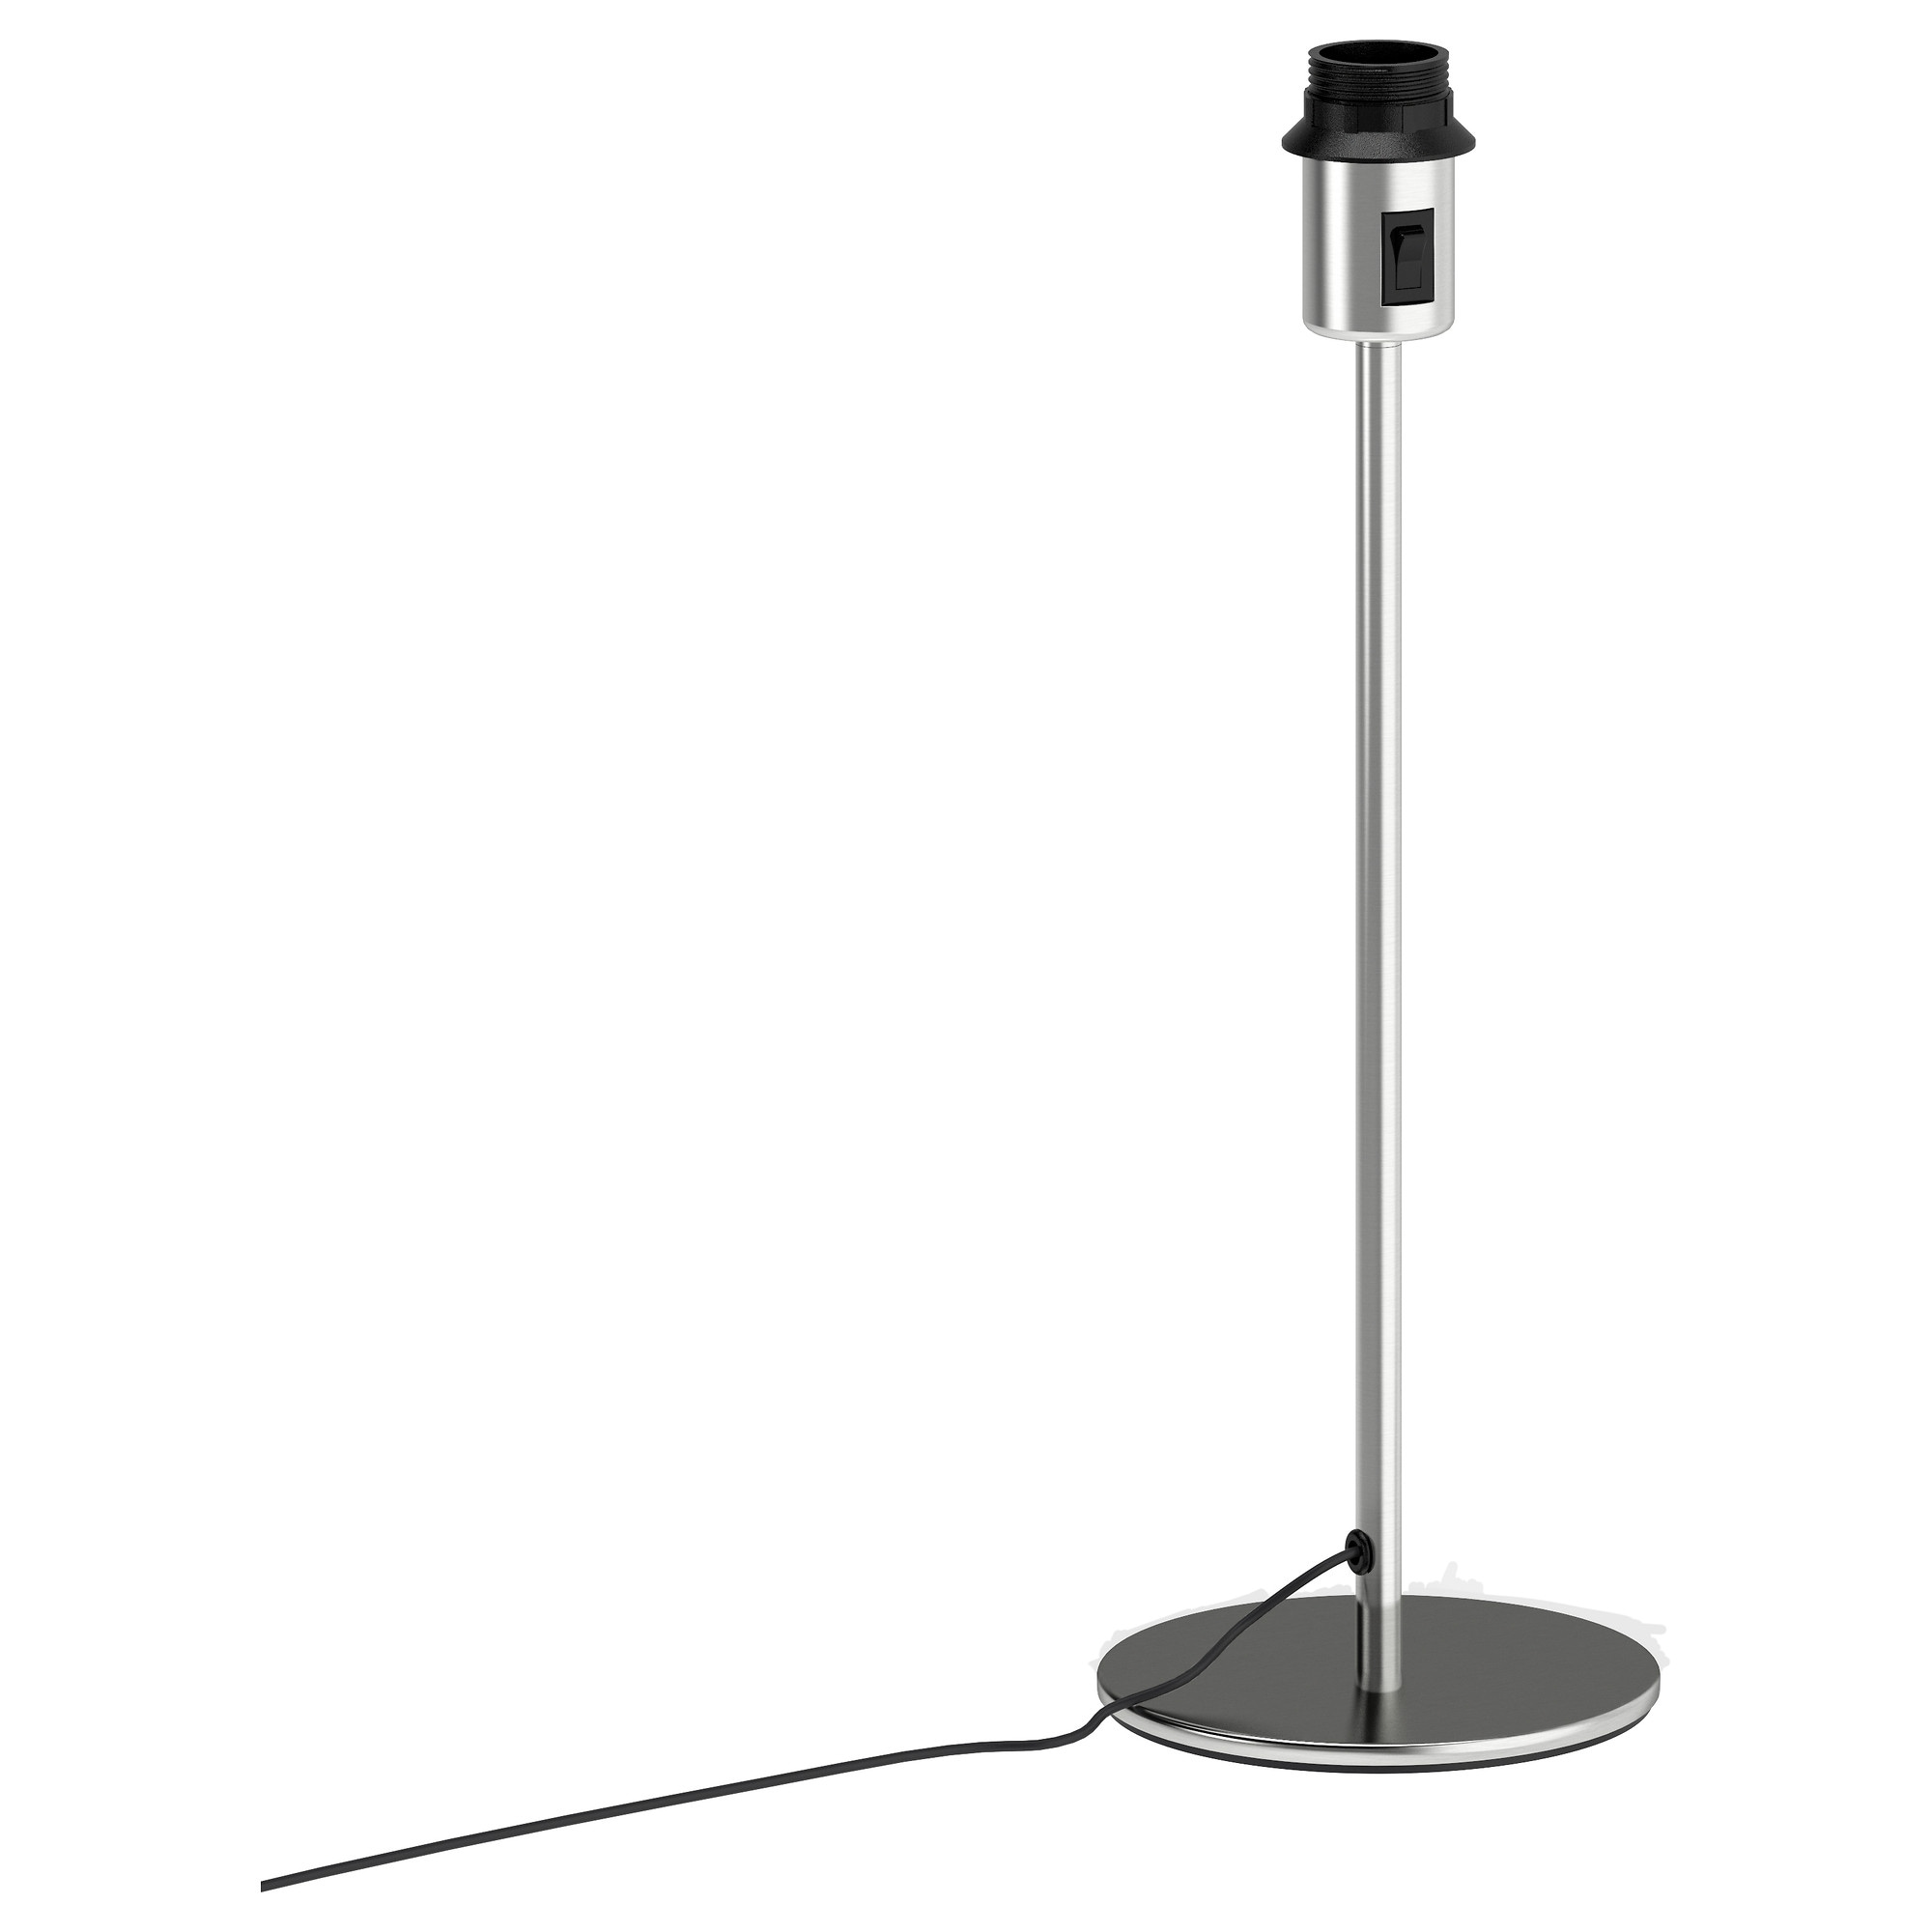 Black Table Lamp Base: RODD table lamp base with LED bulb, nickel plated Height: 18